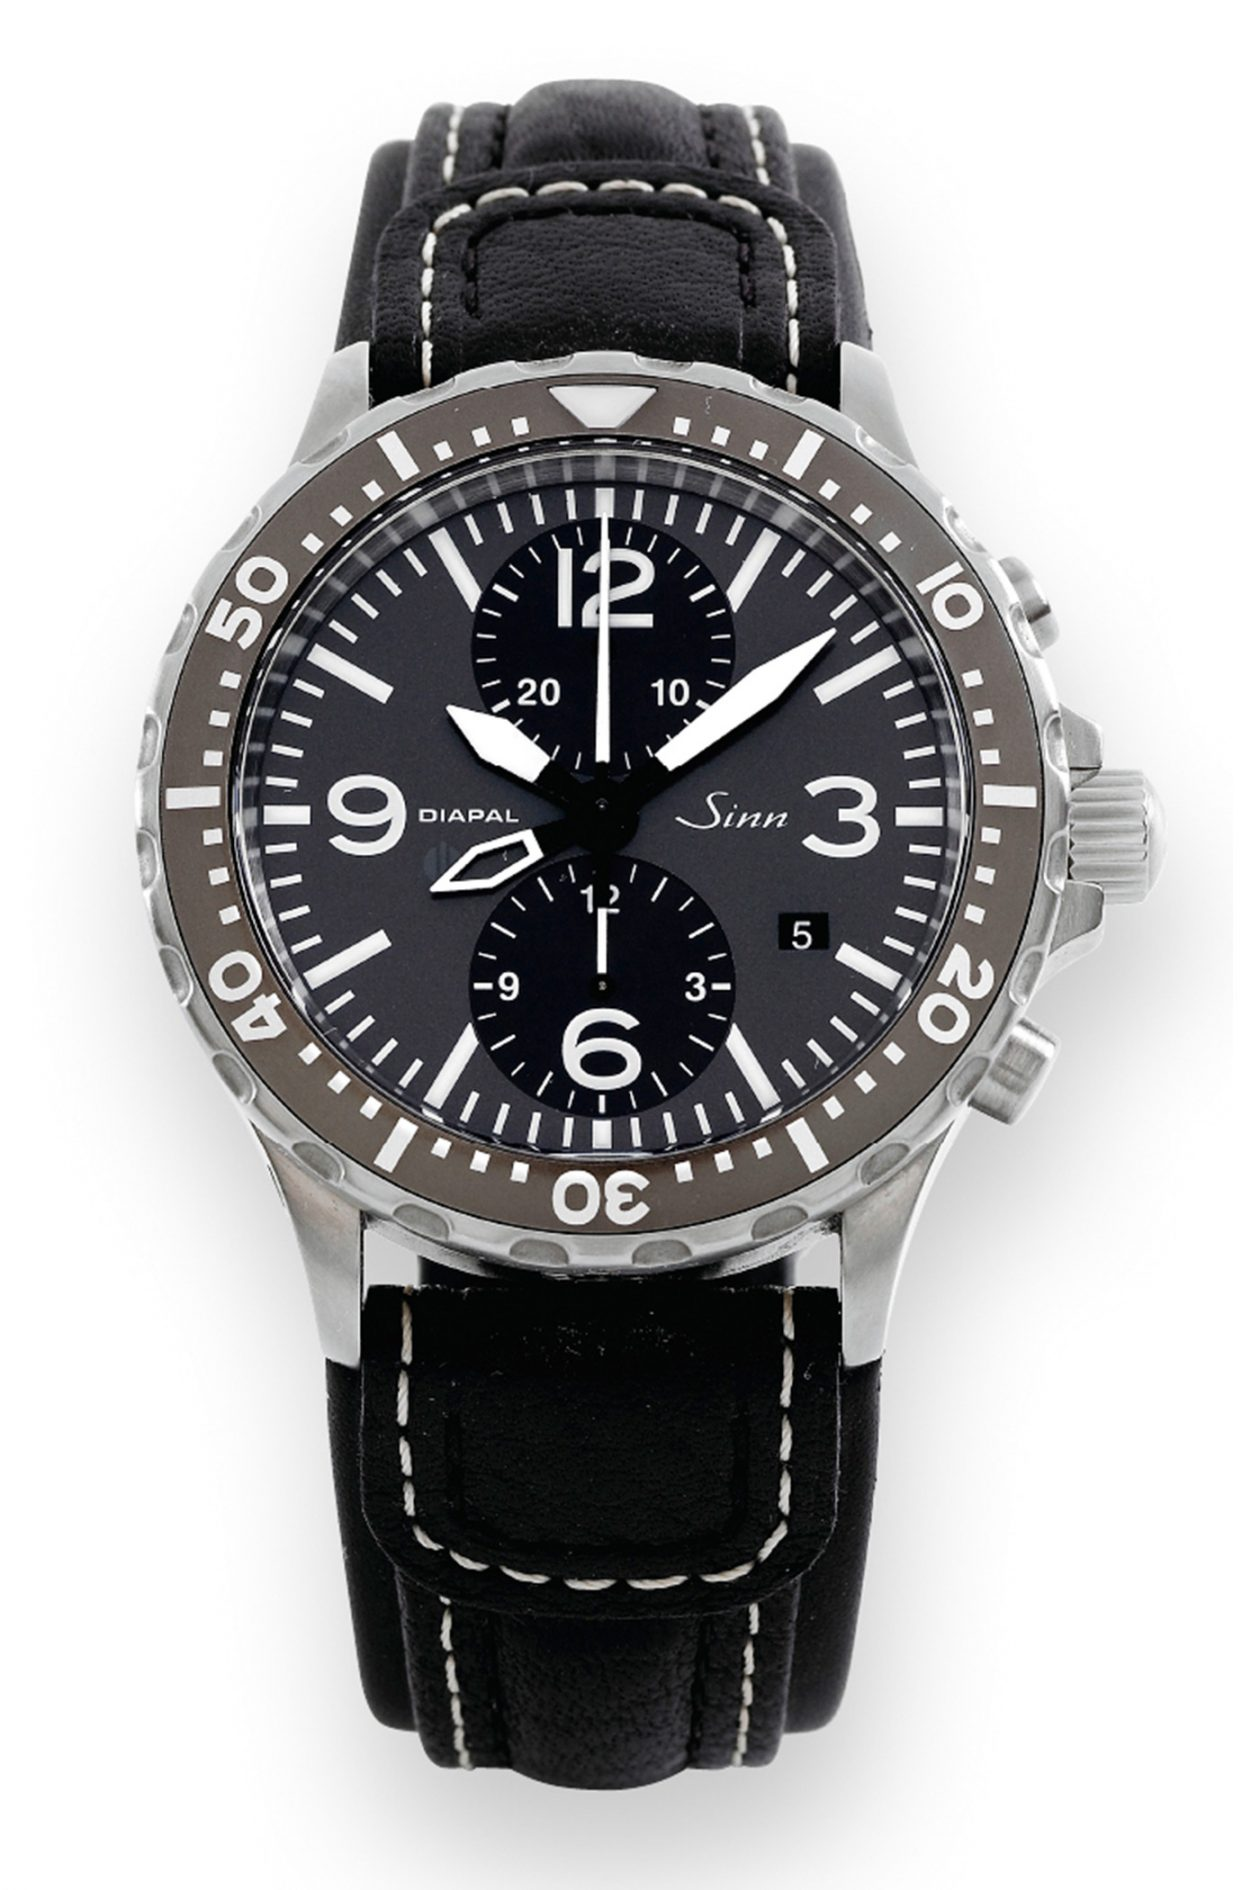 Sinn Diapal Automatic Chronograph / foto: Antiquorum